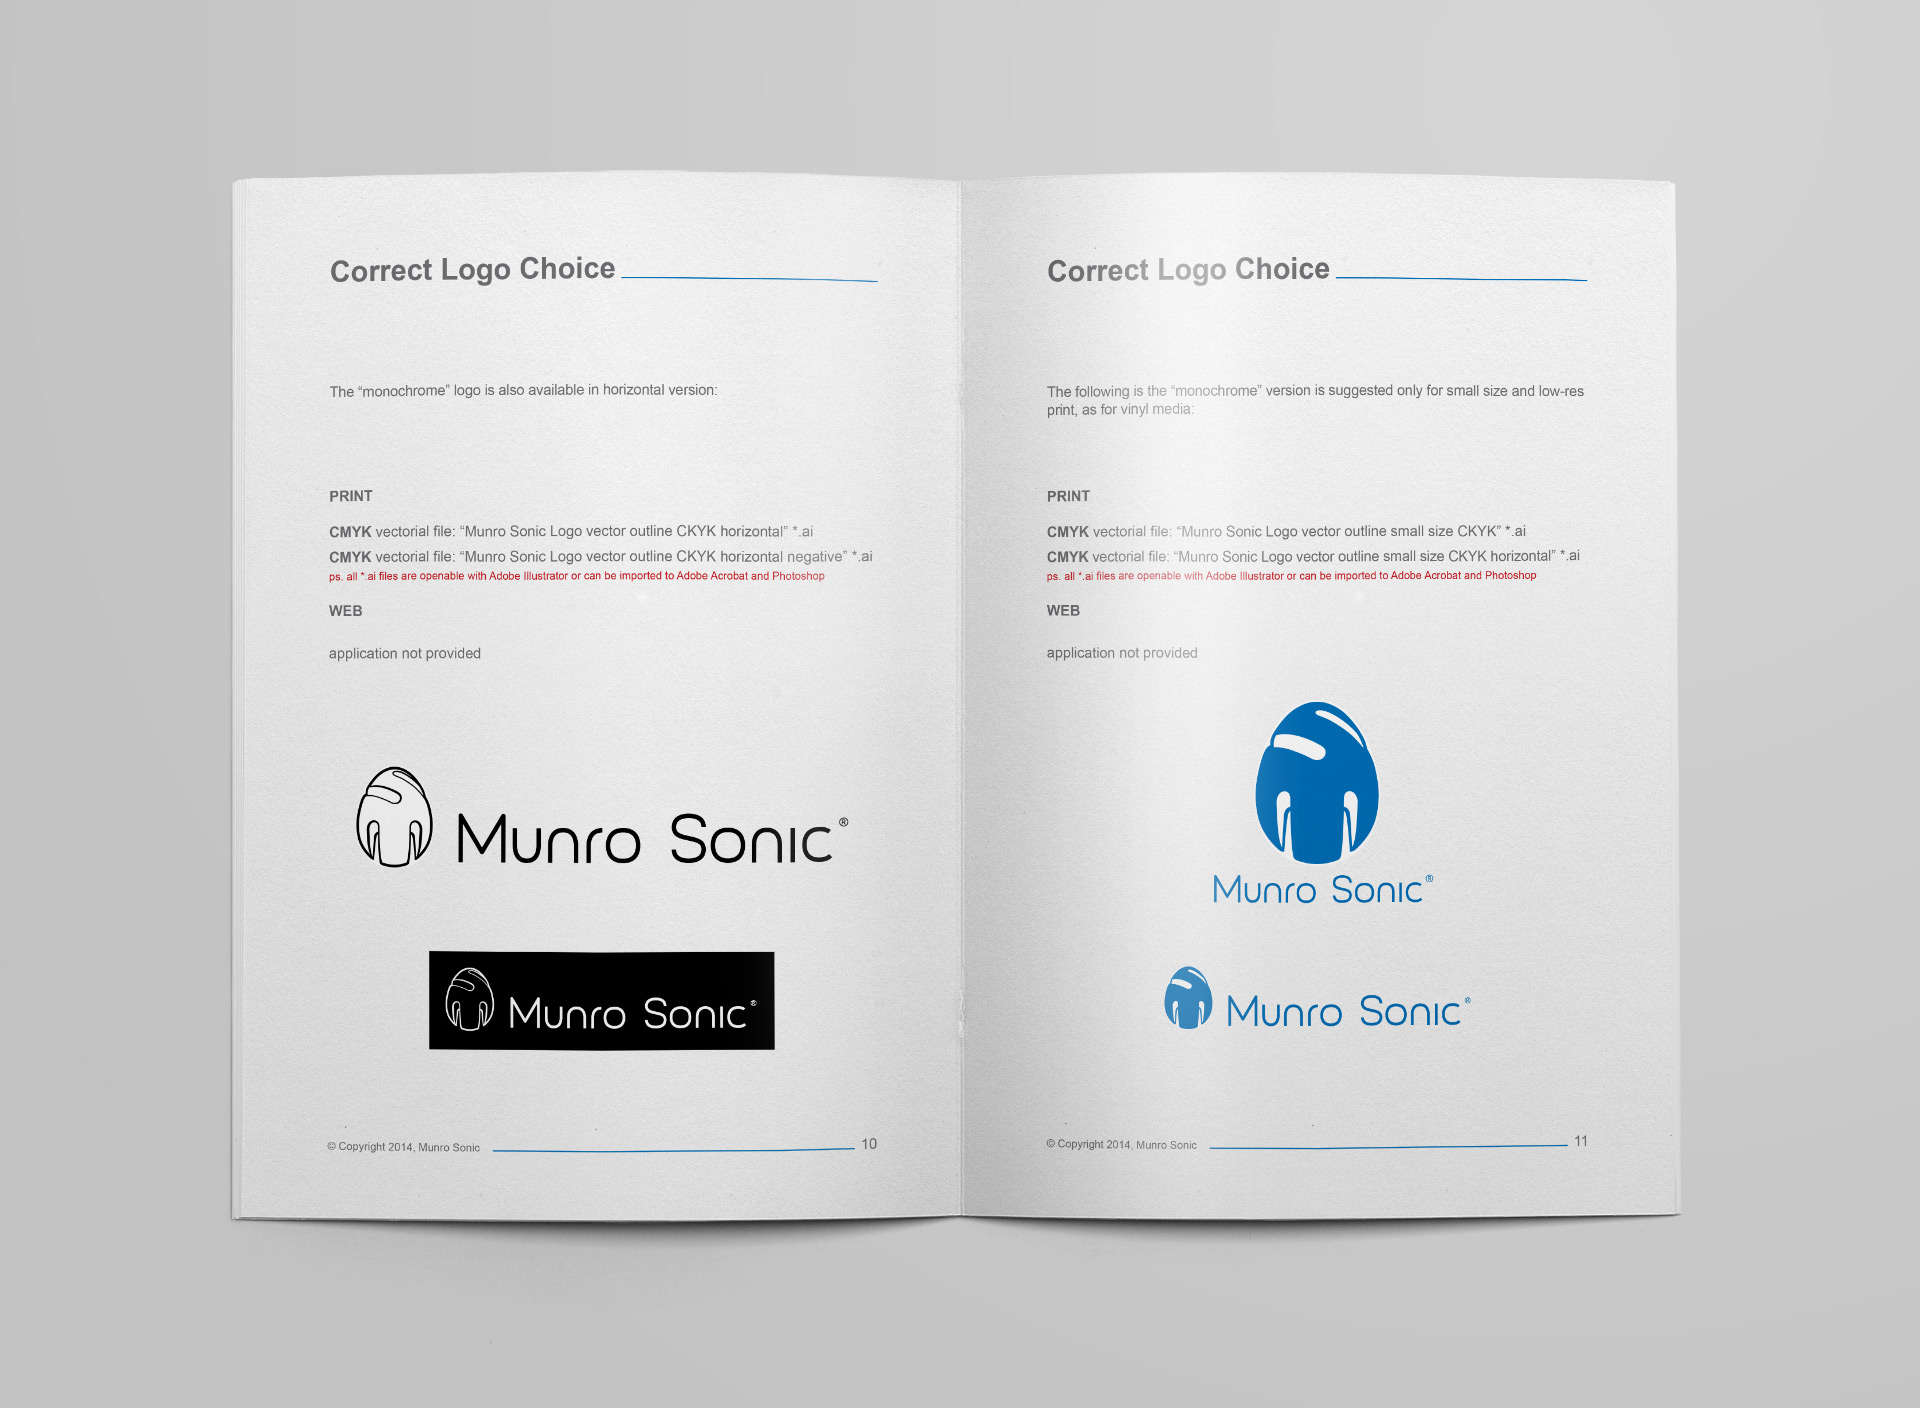 Munro-Sonic-guidelines-10-11